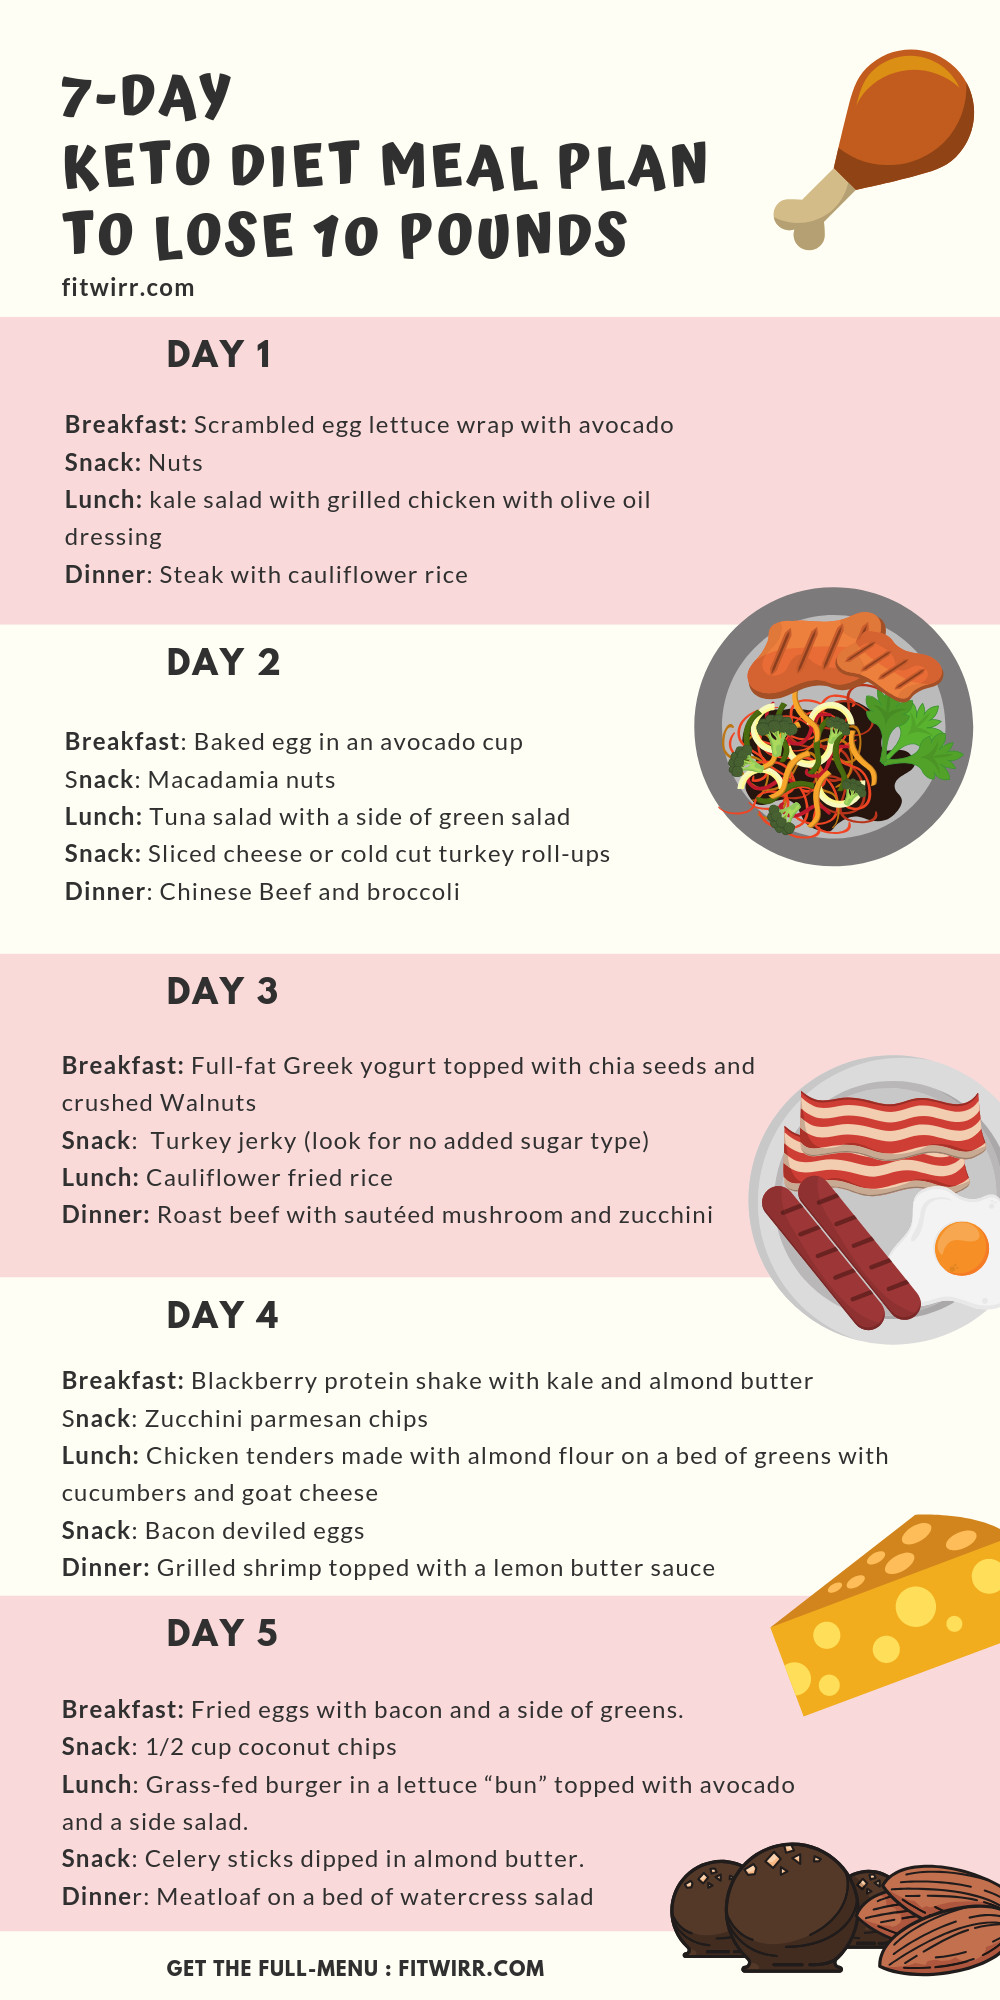 Keto Diet For Beginners Losing Weight Breakfast  Keto Diet Menu 7 Day Keto Meal Plan for Beginners to Lose